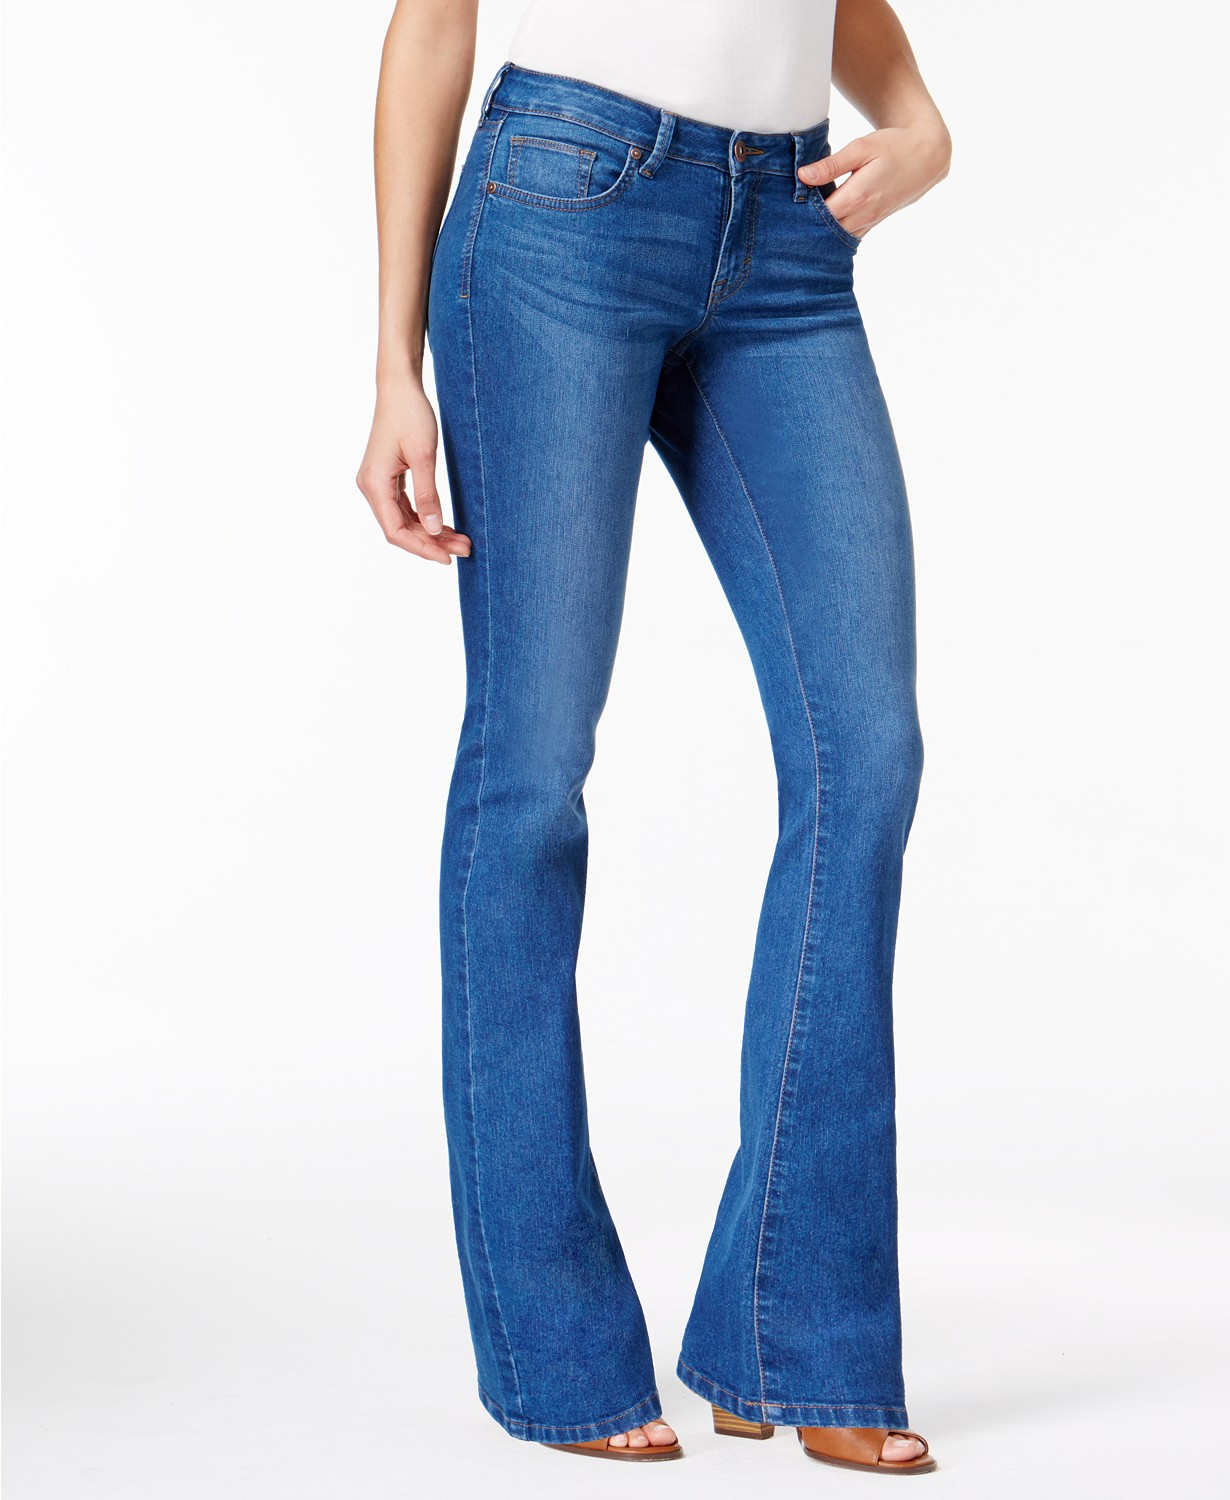 capside Style & co jeans flared legs